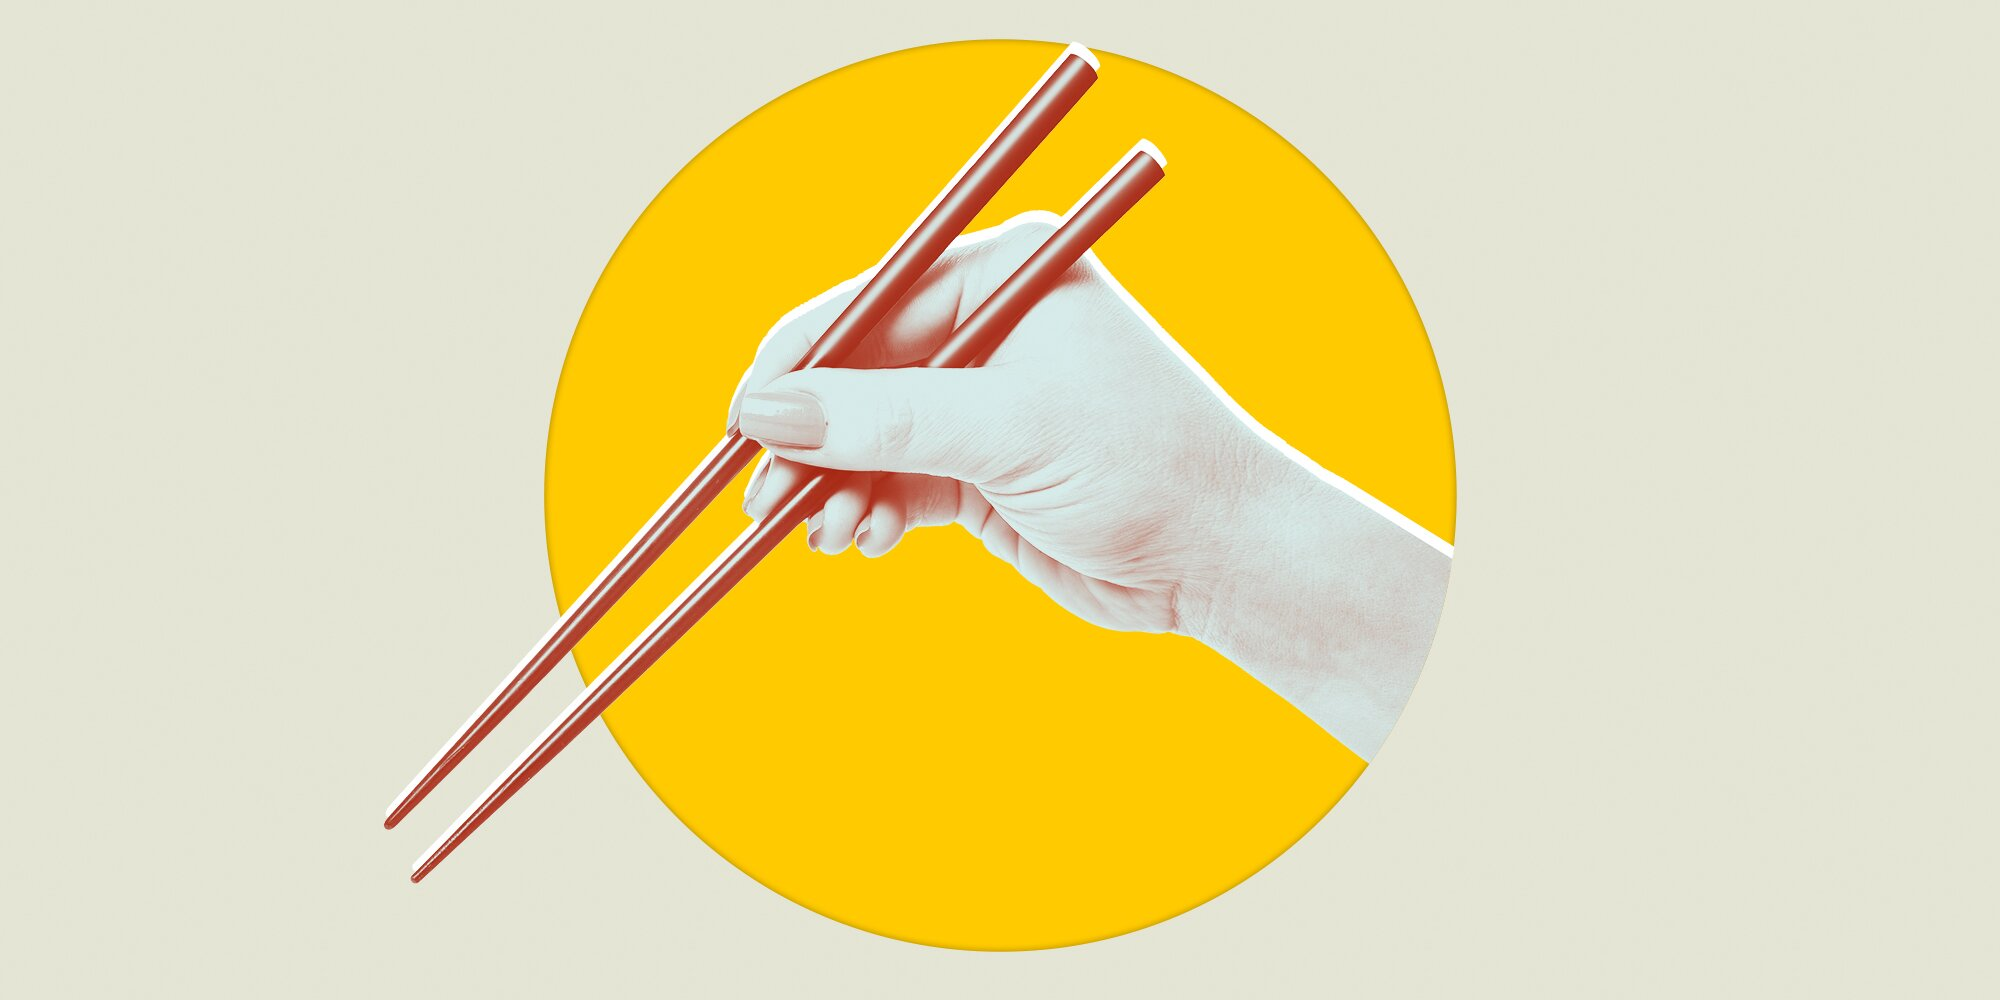 7 Mistakes You Might Be Making When Using Chopsticks